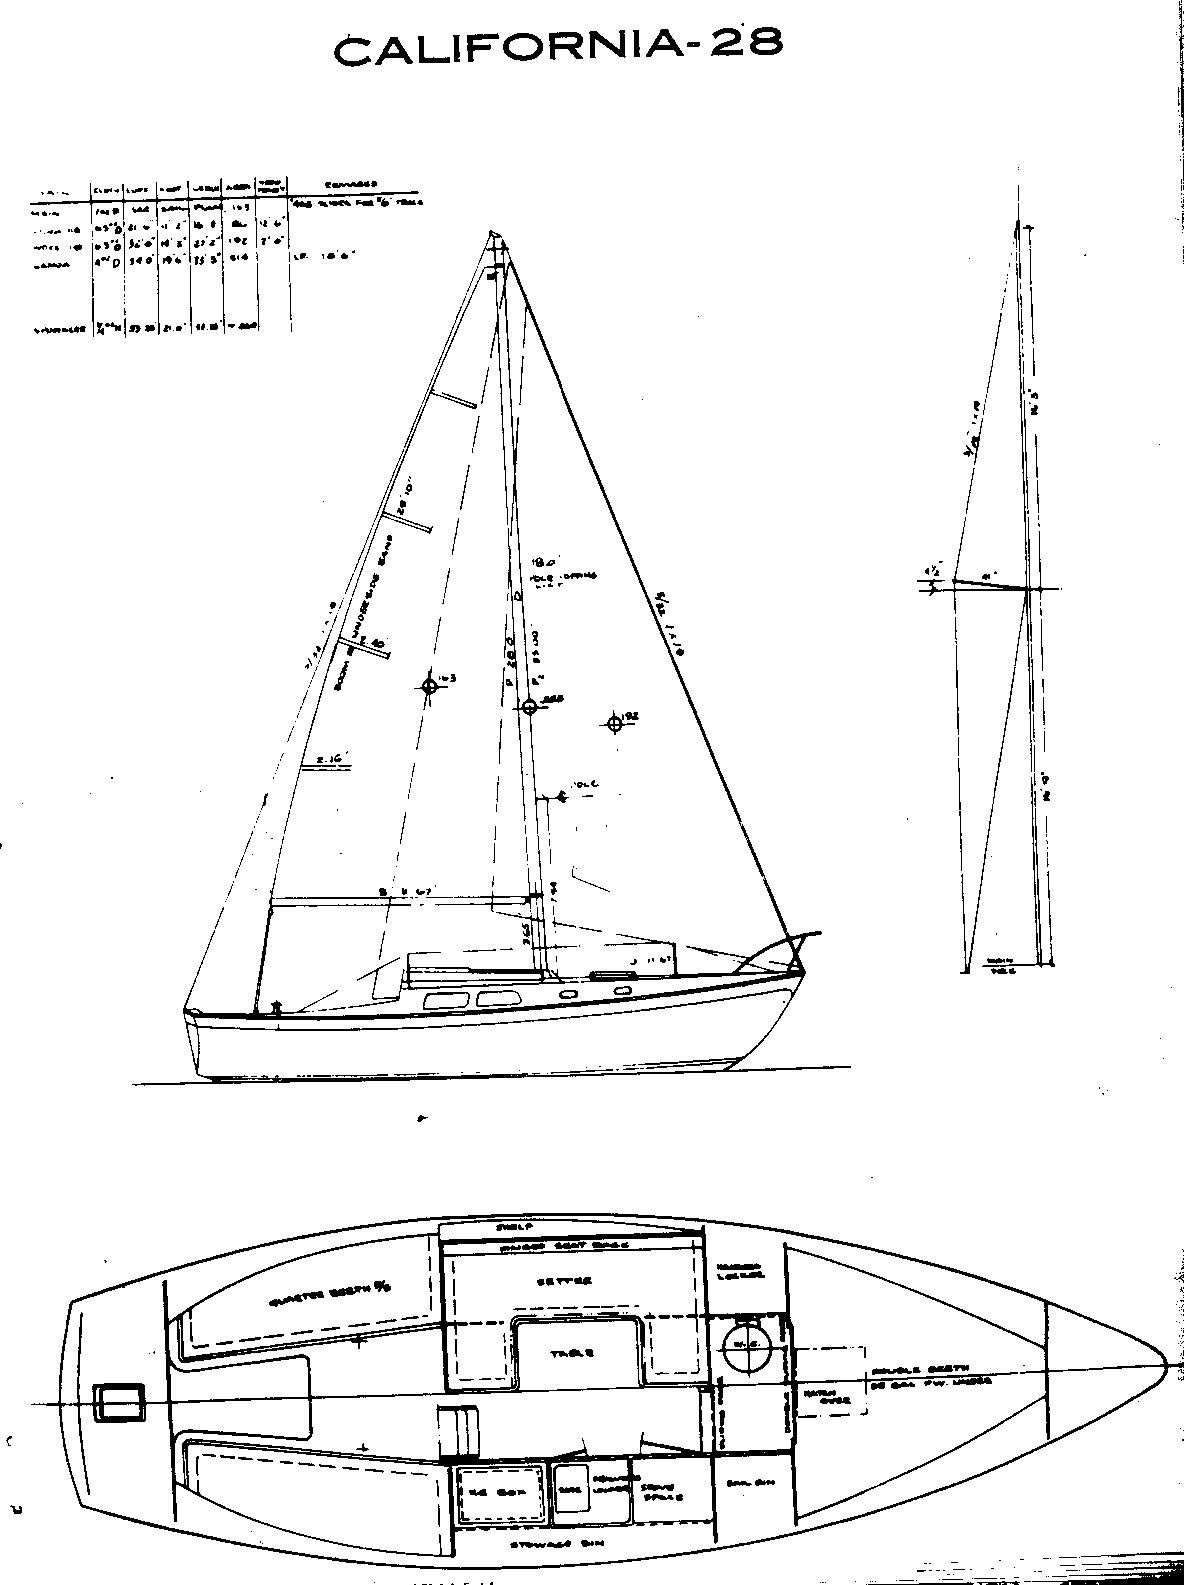 Cal 28 Line Drawing